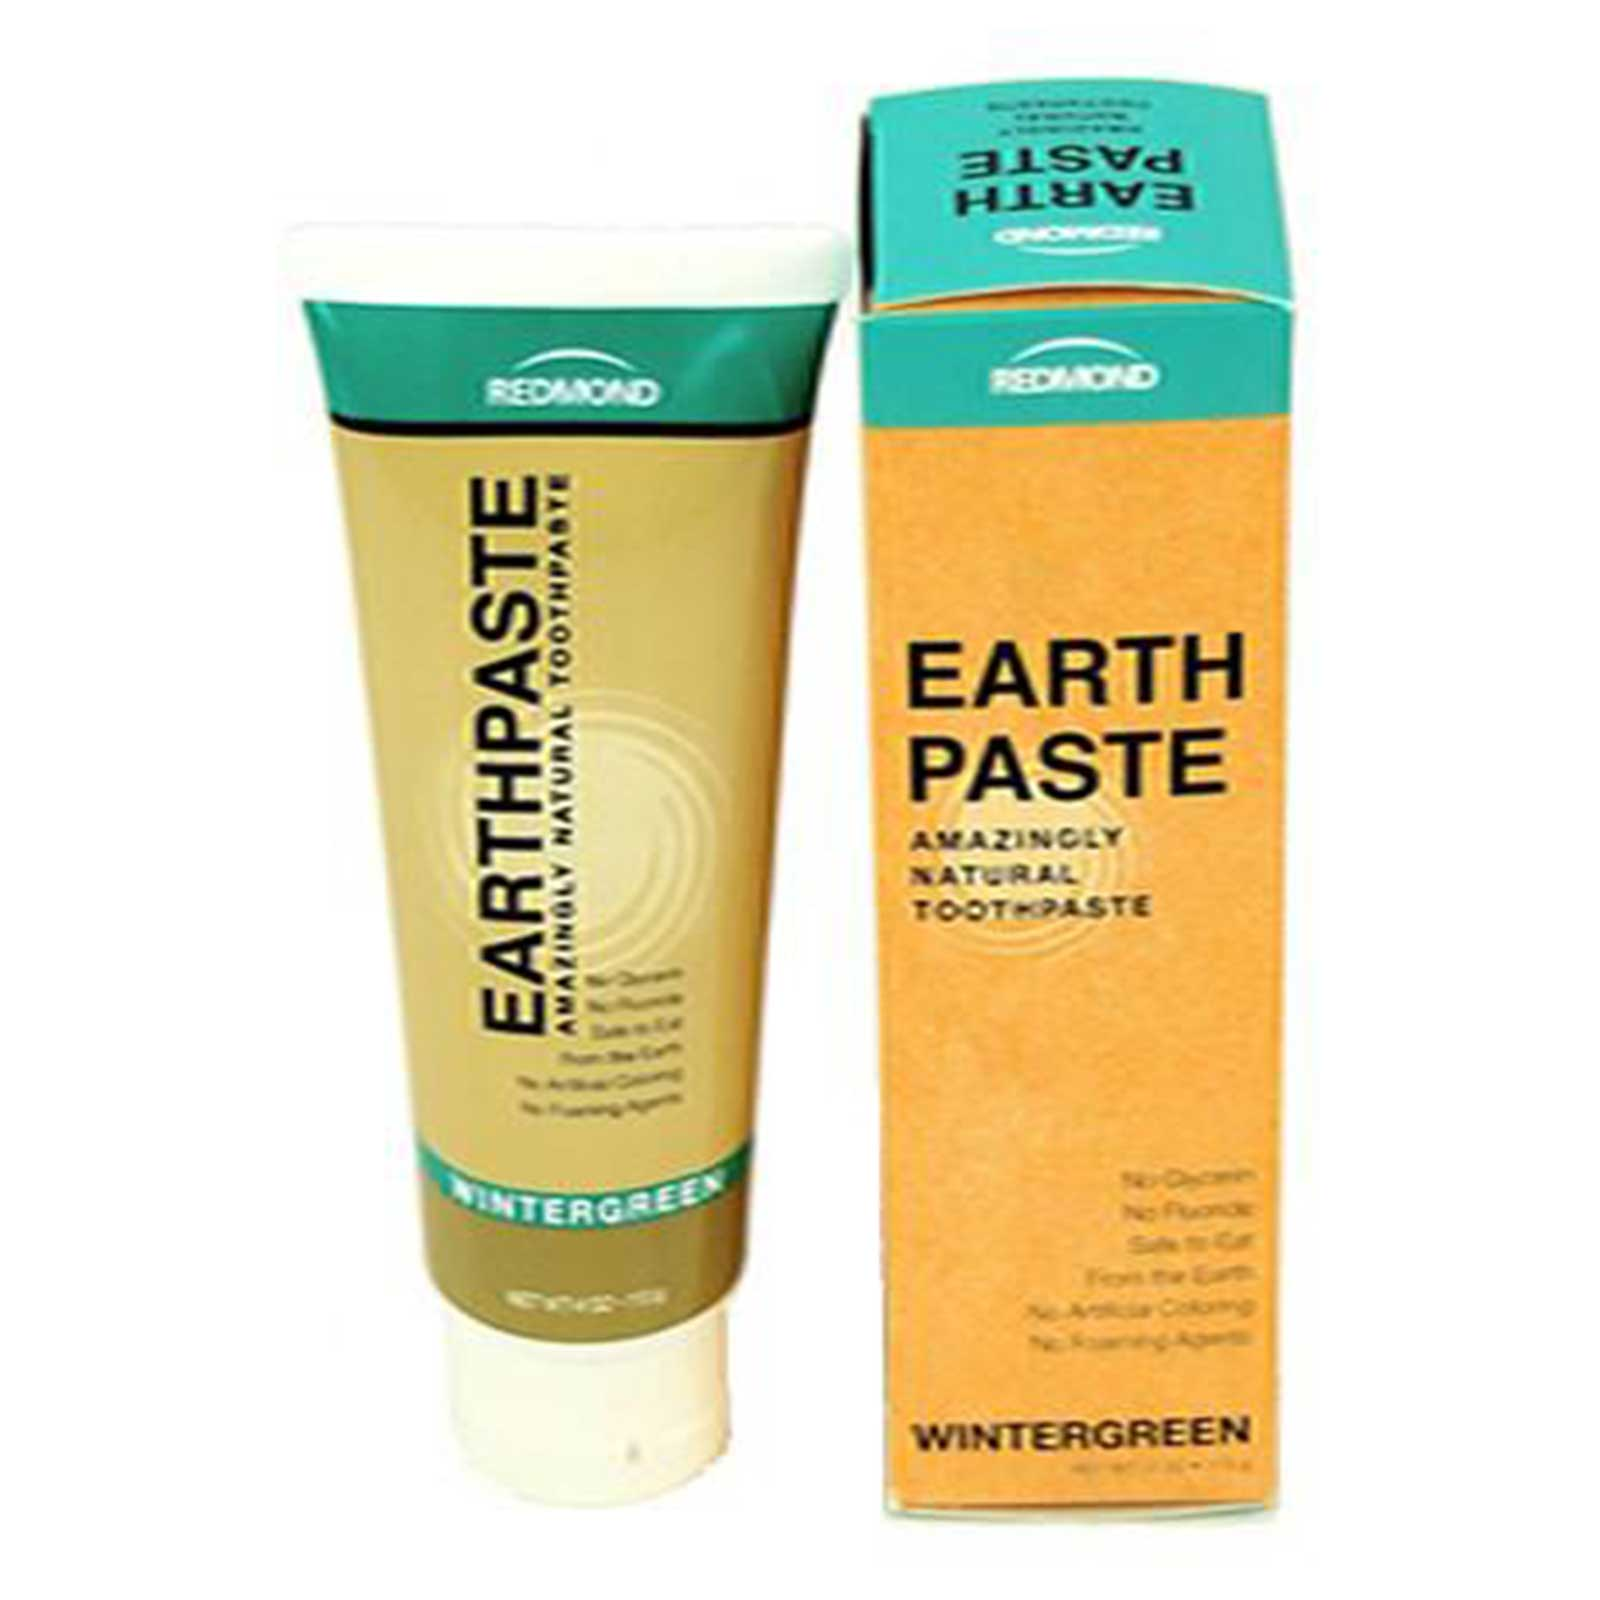 Earthpaste by Redmond - All Natural Toothpaste - 4 Oz- Wintergreen